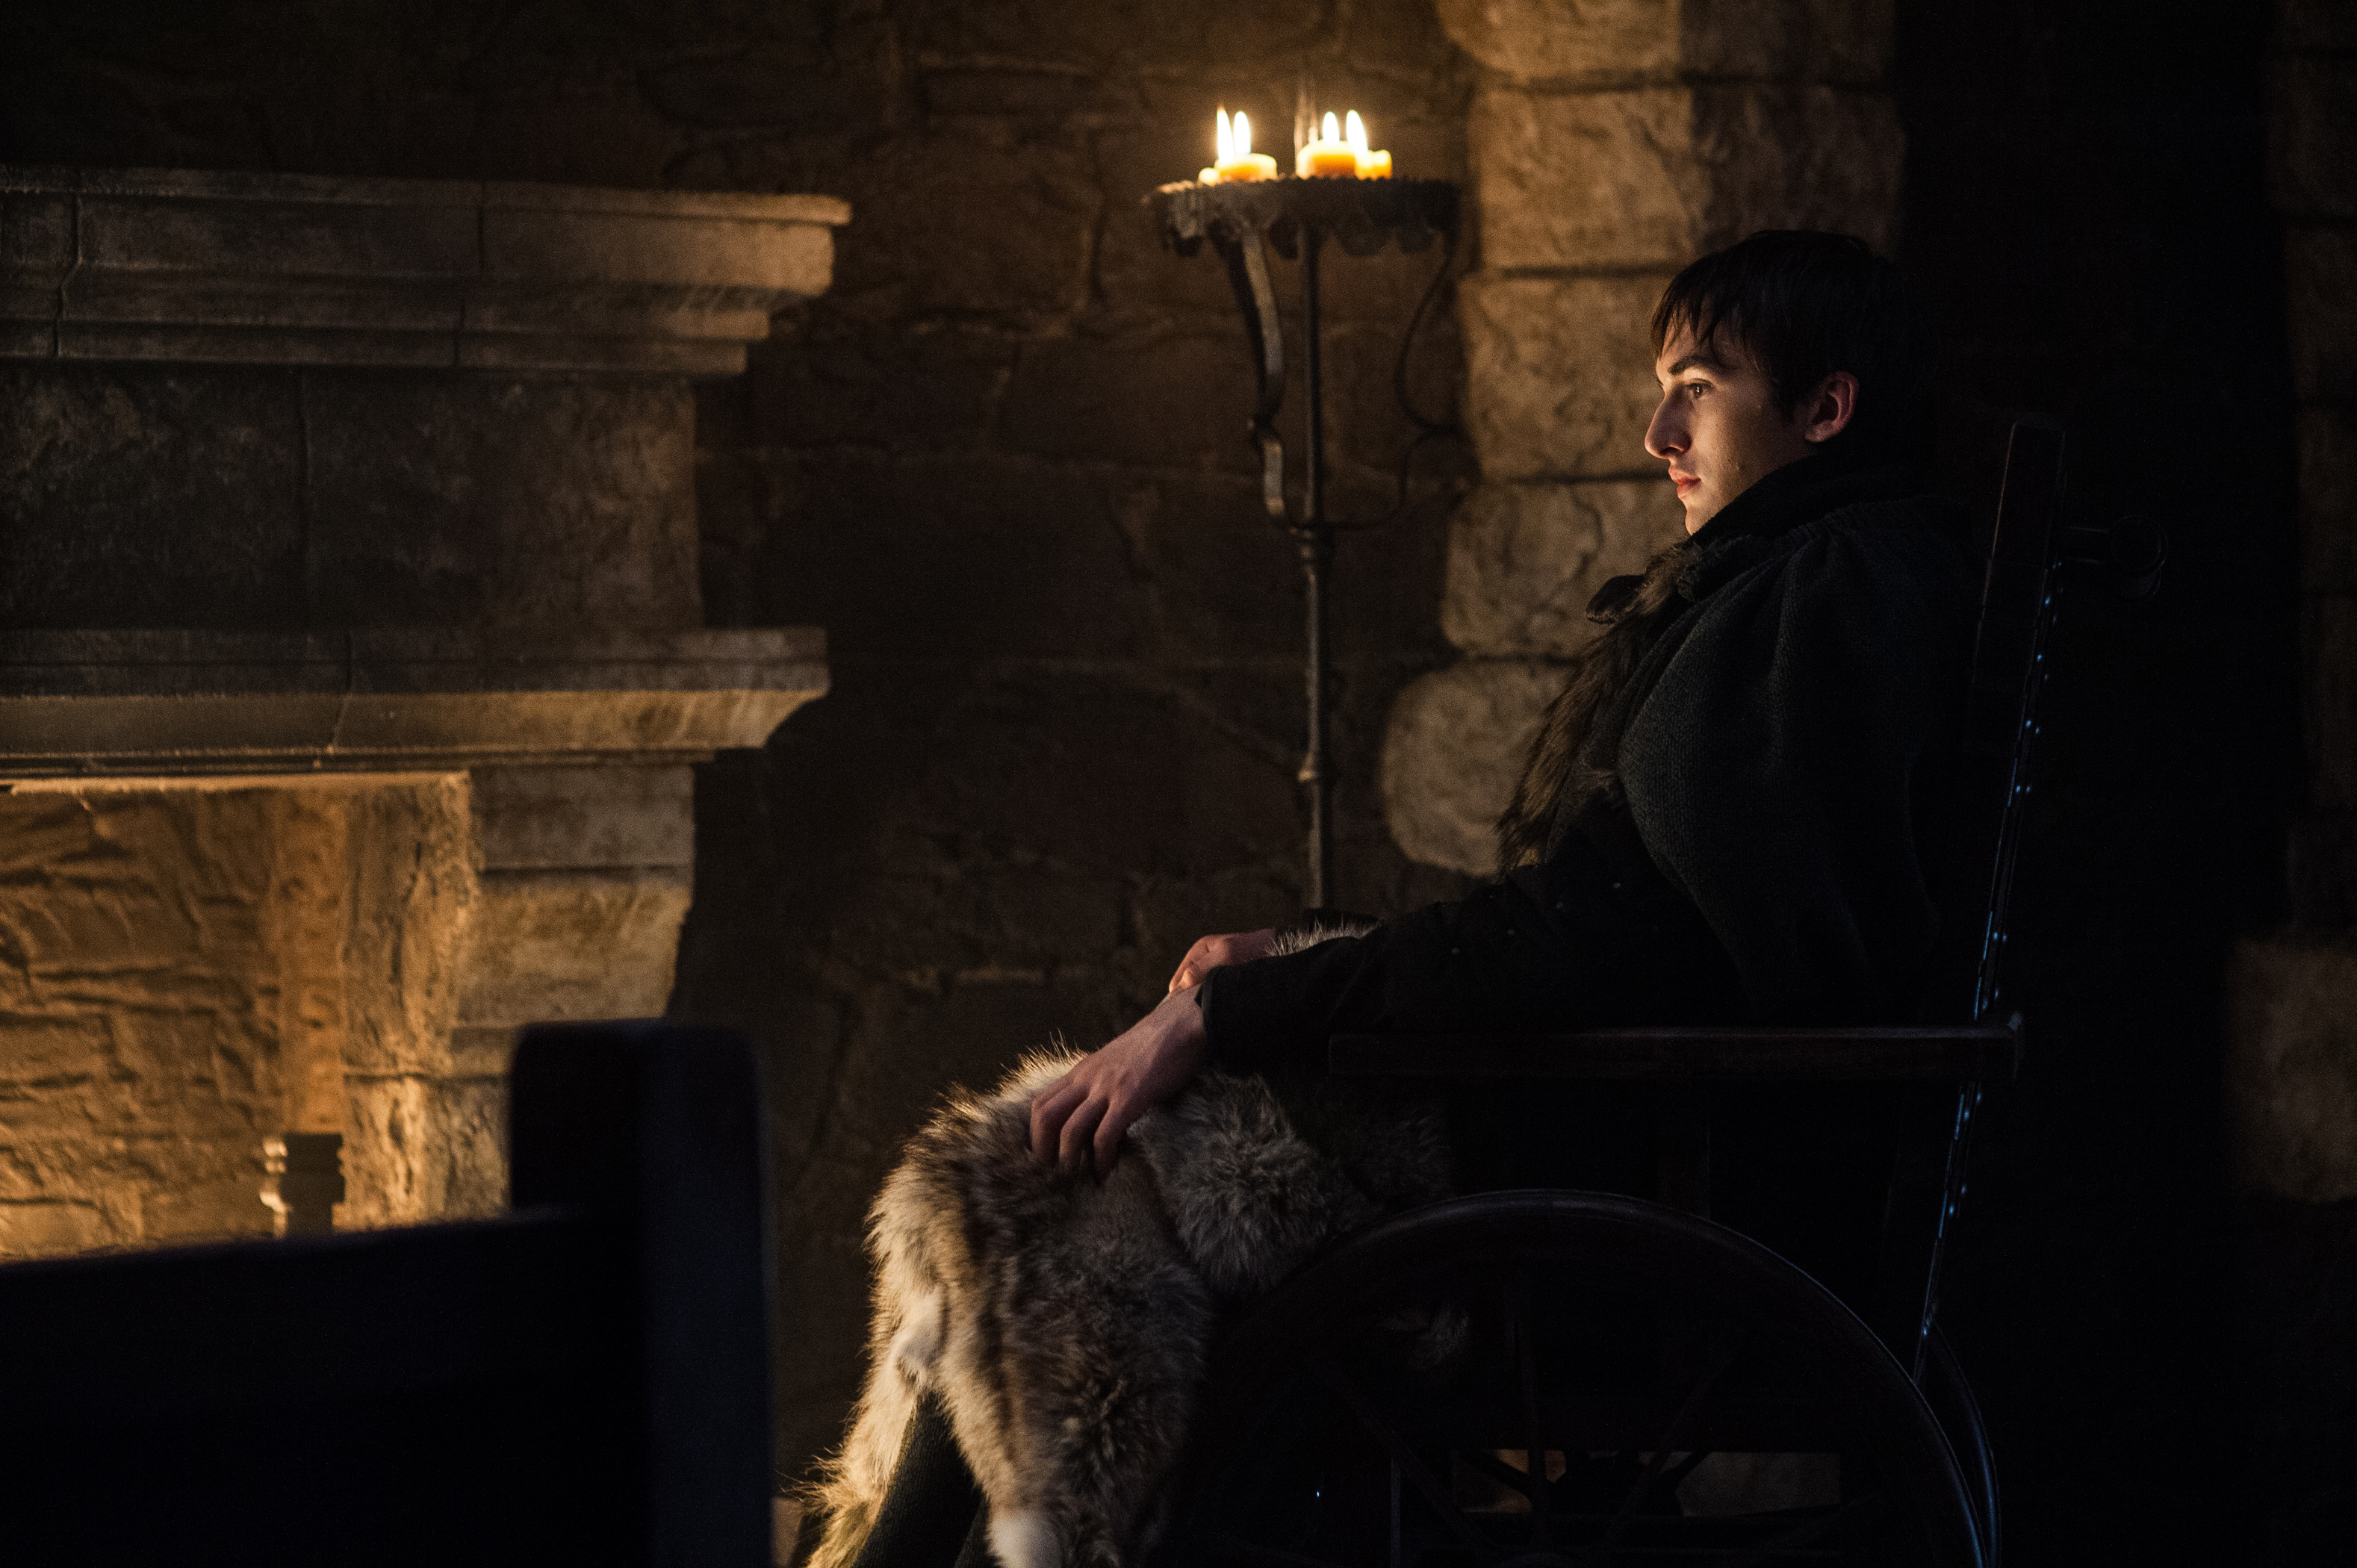 Is there any upside if Jon Snow learns and reveals his